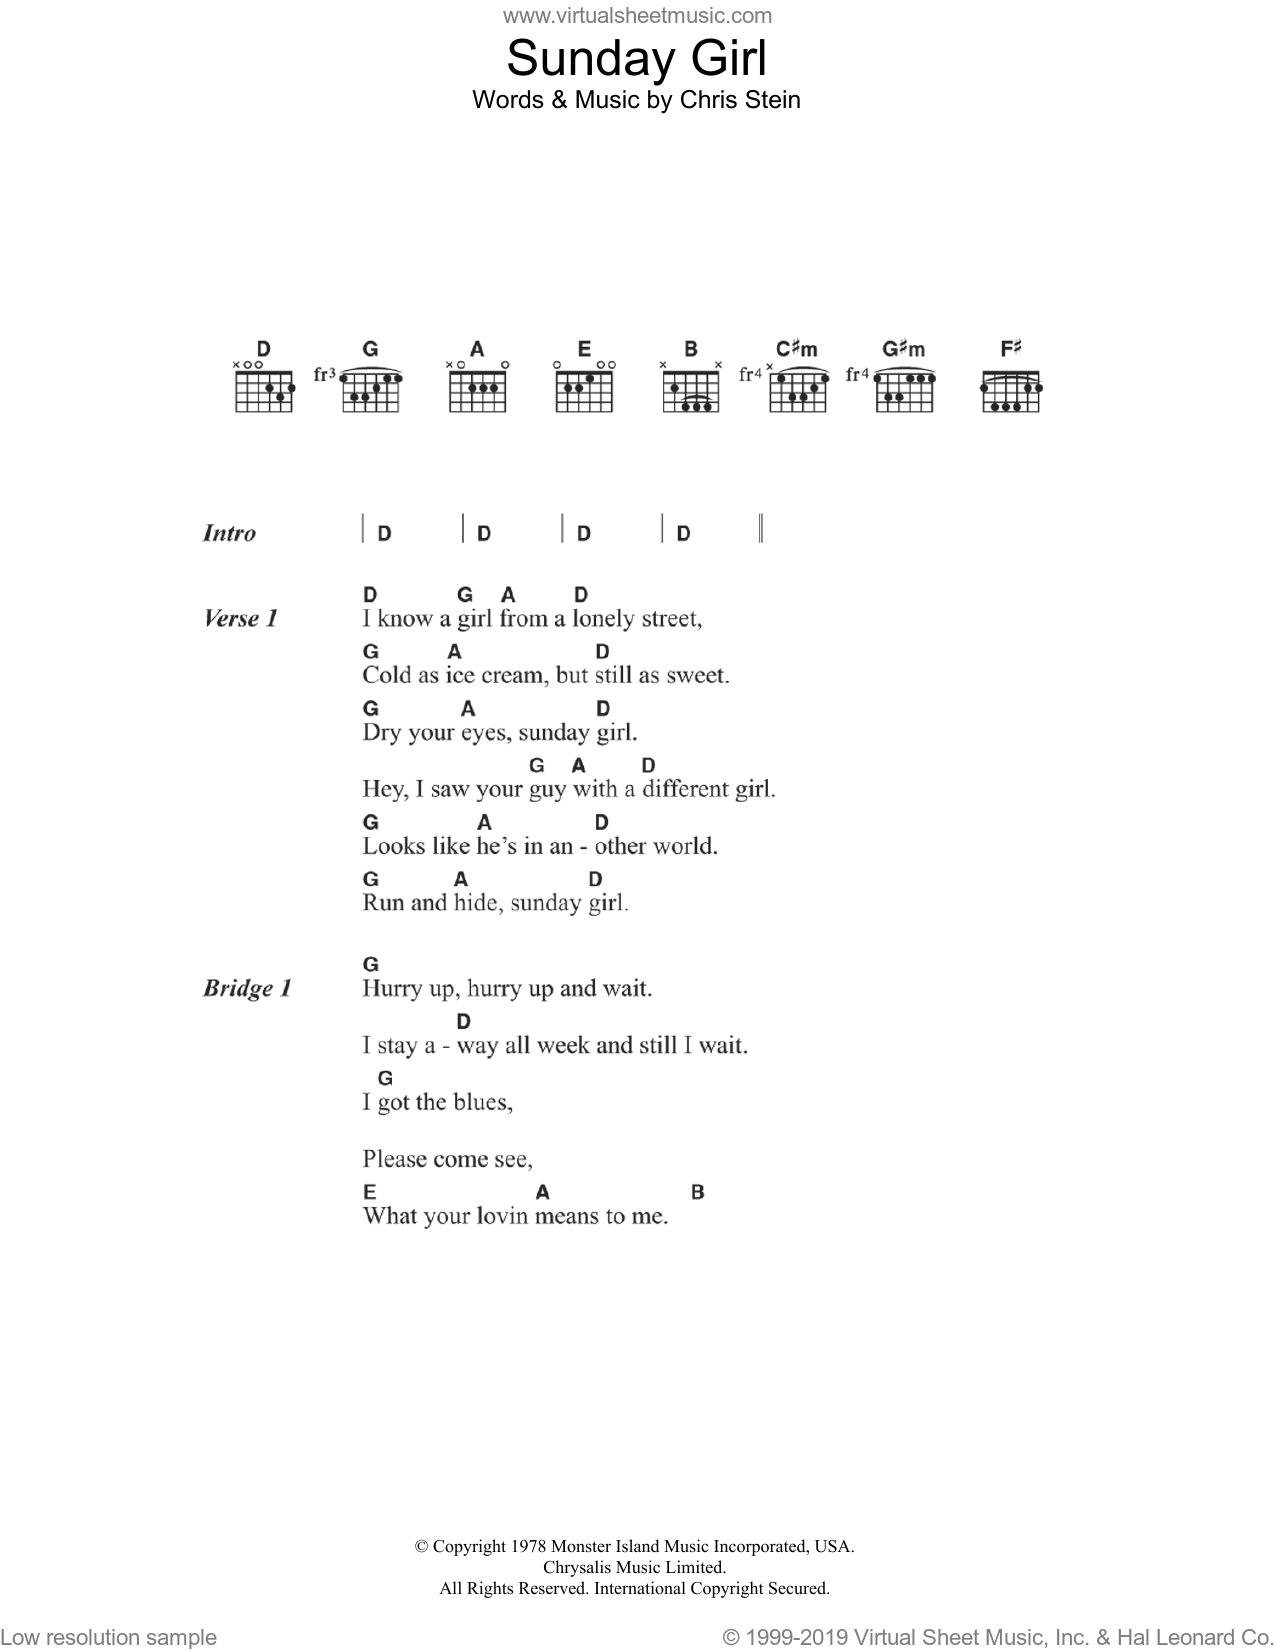 Sunday Girl sheet music for guitar (chords) by Chris Stein